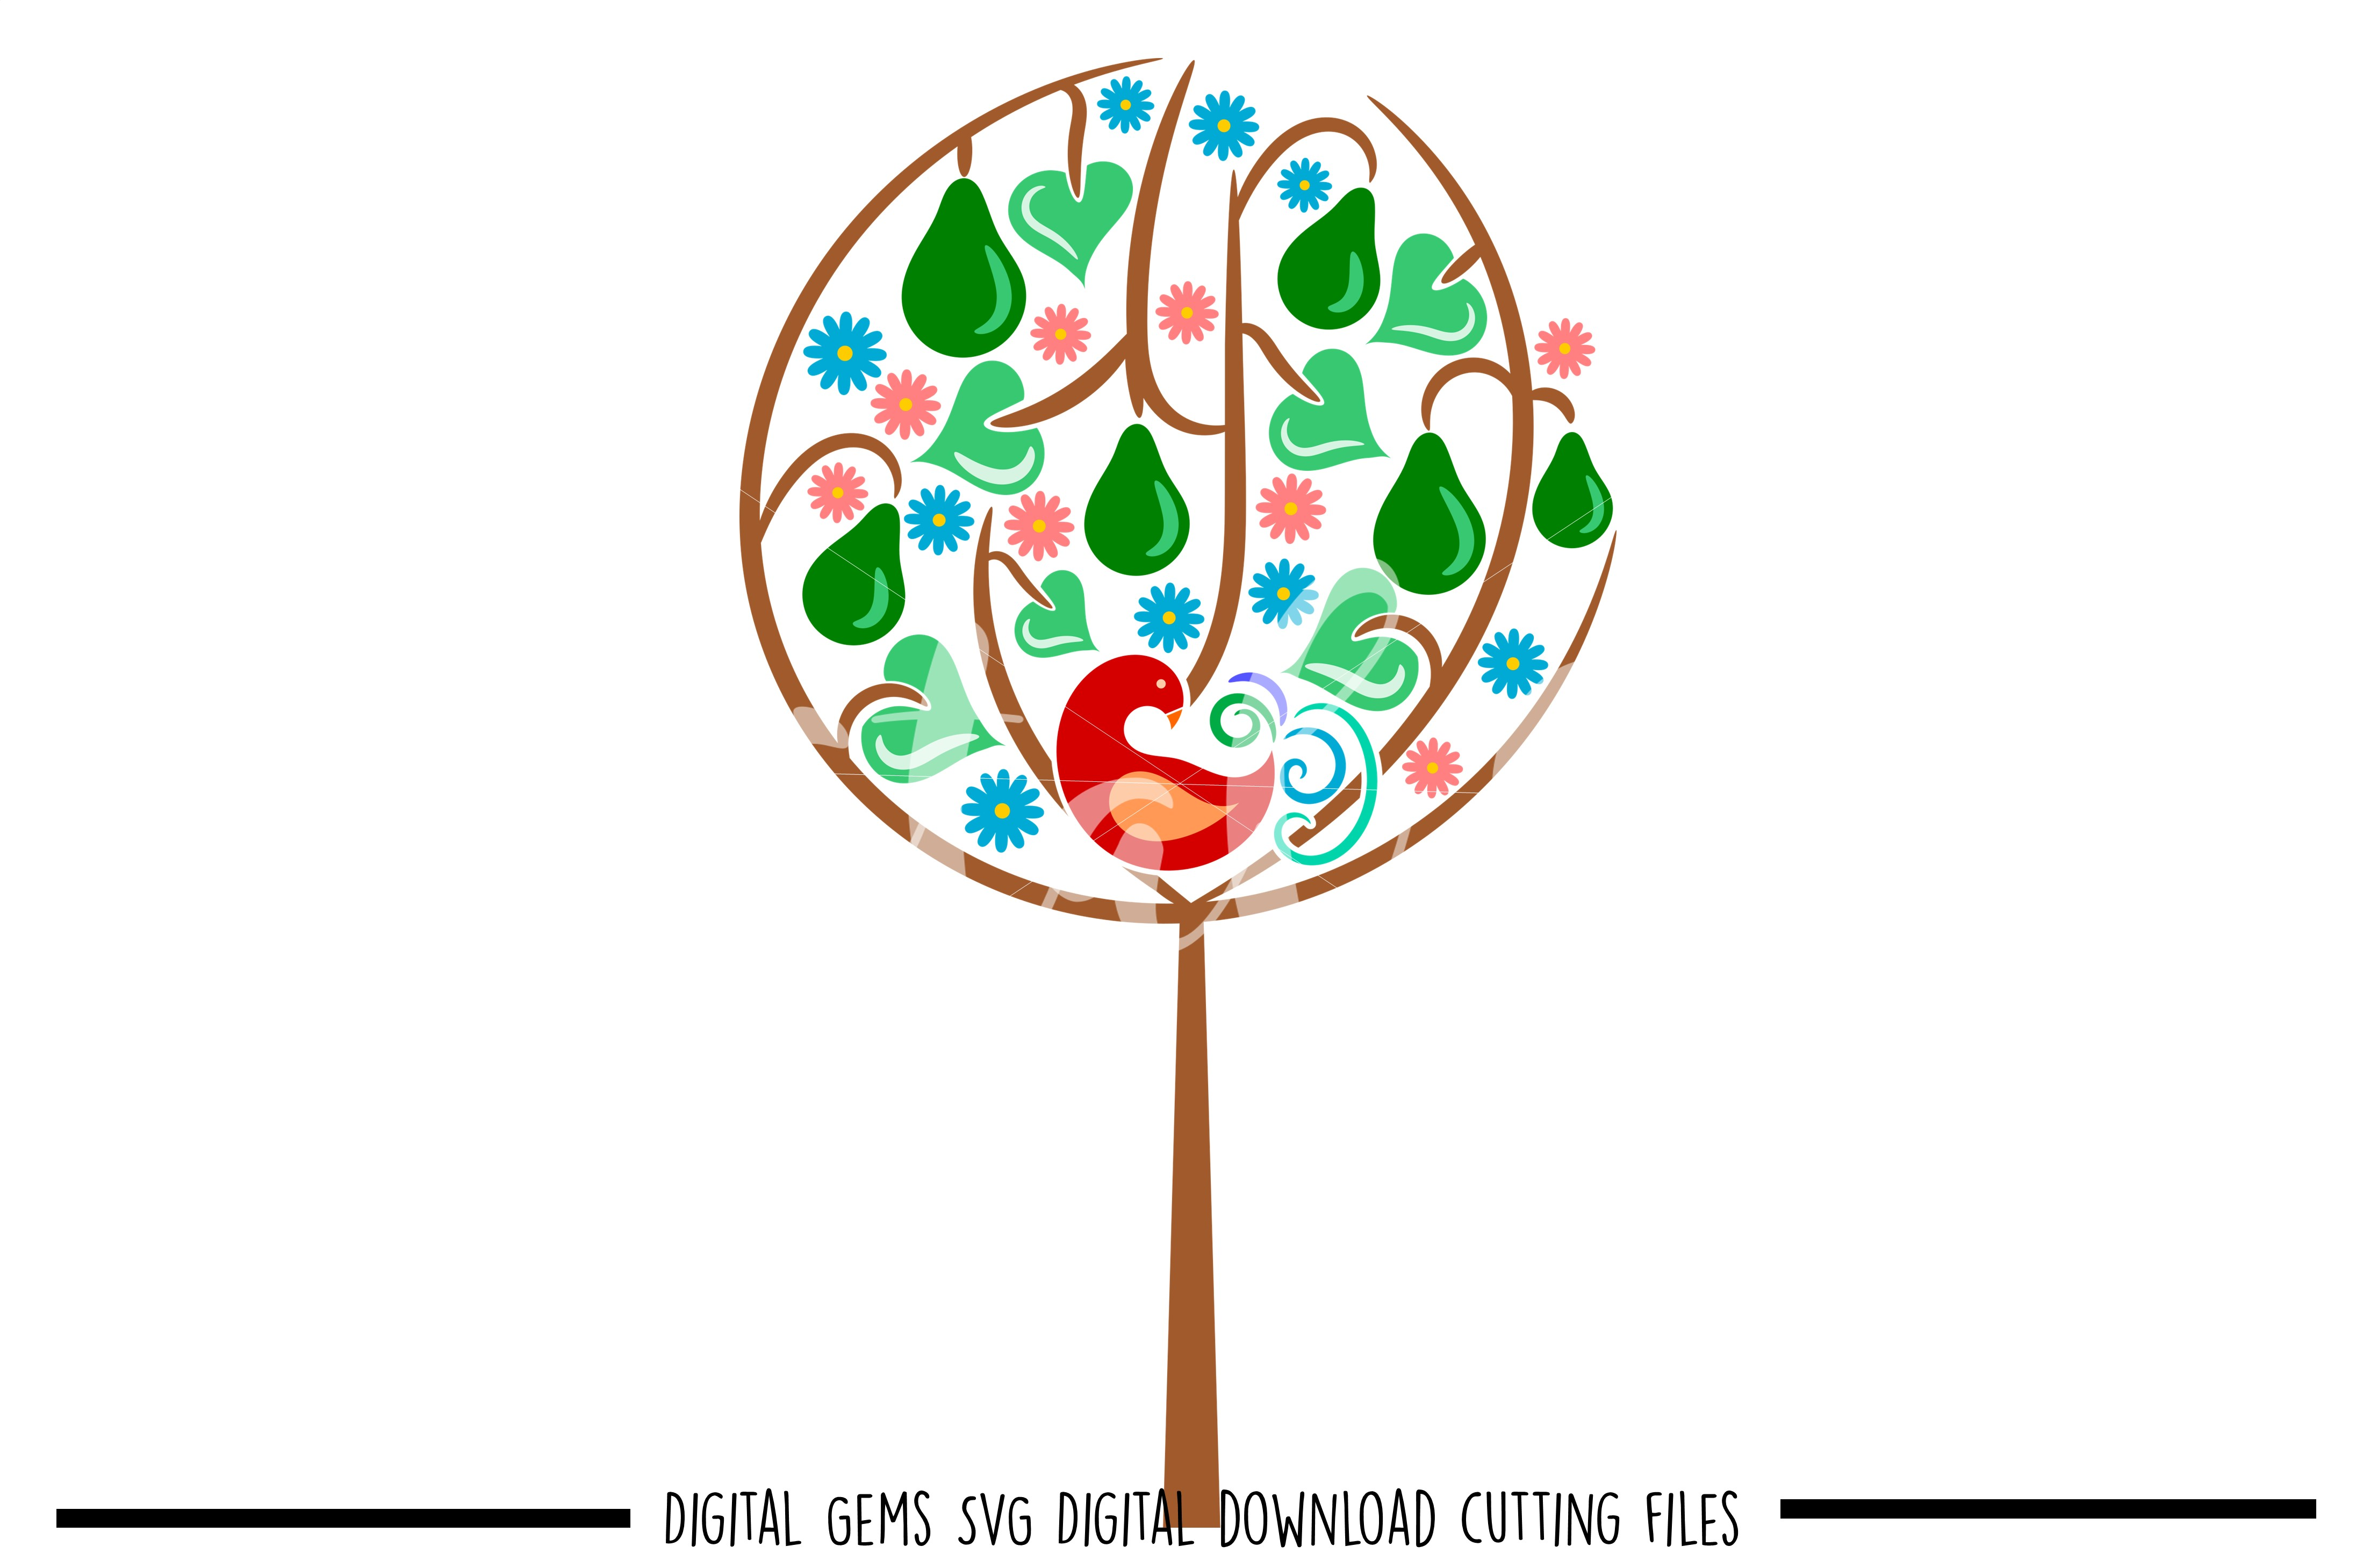 A Partridge in a pear tree SVG / DXF / EPS / PNG files example image 1